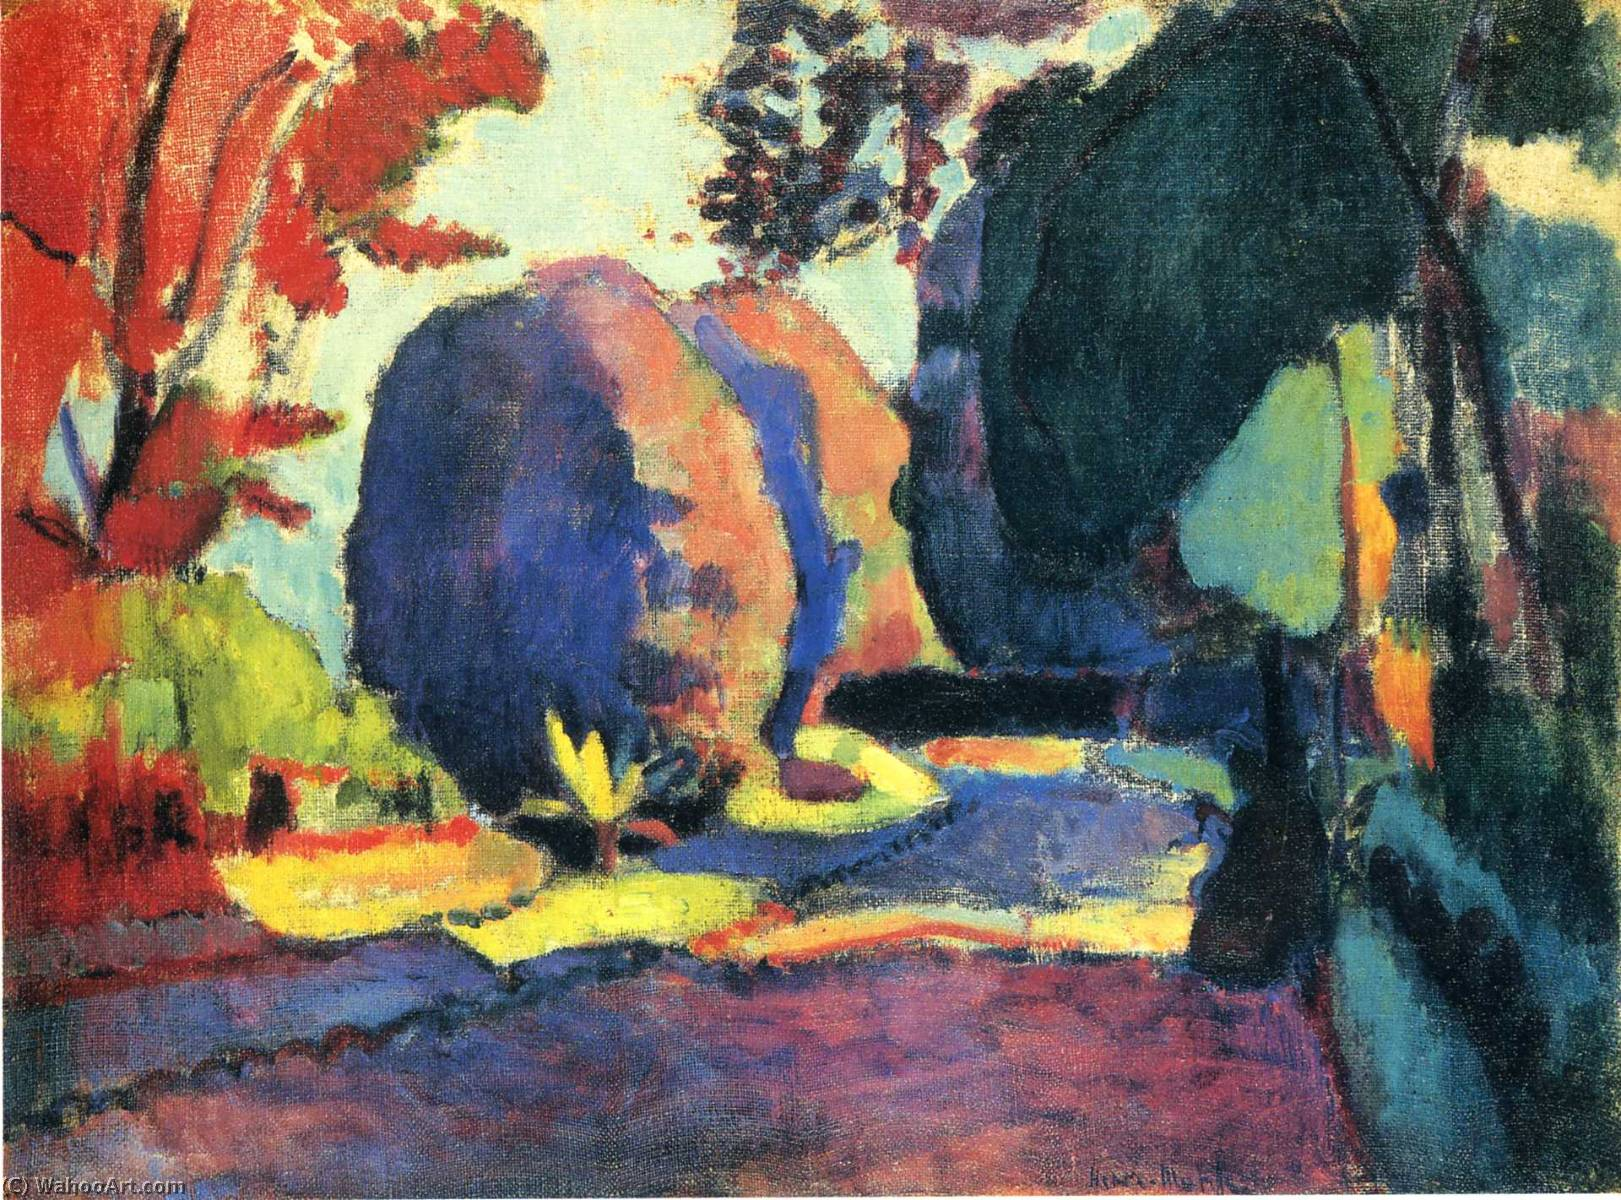 Gallery Henri Matisse, (France), (1869-1954) - The complete works ...